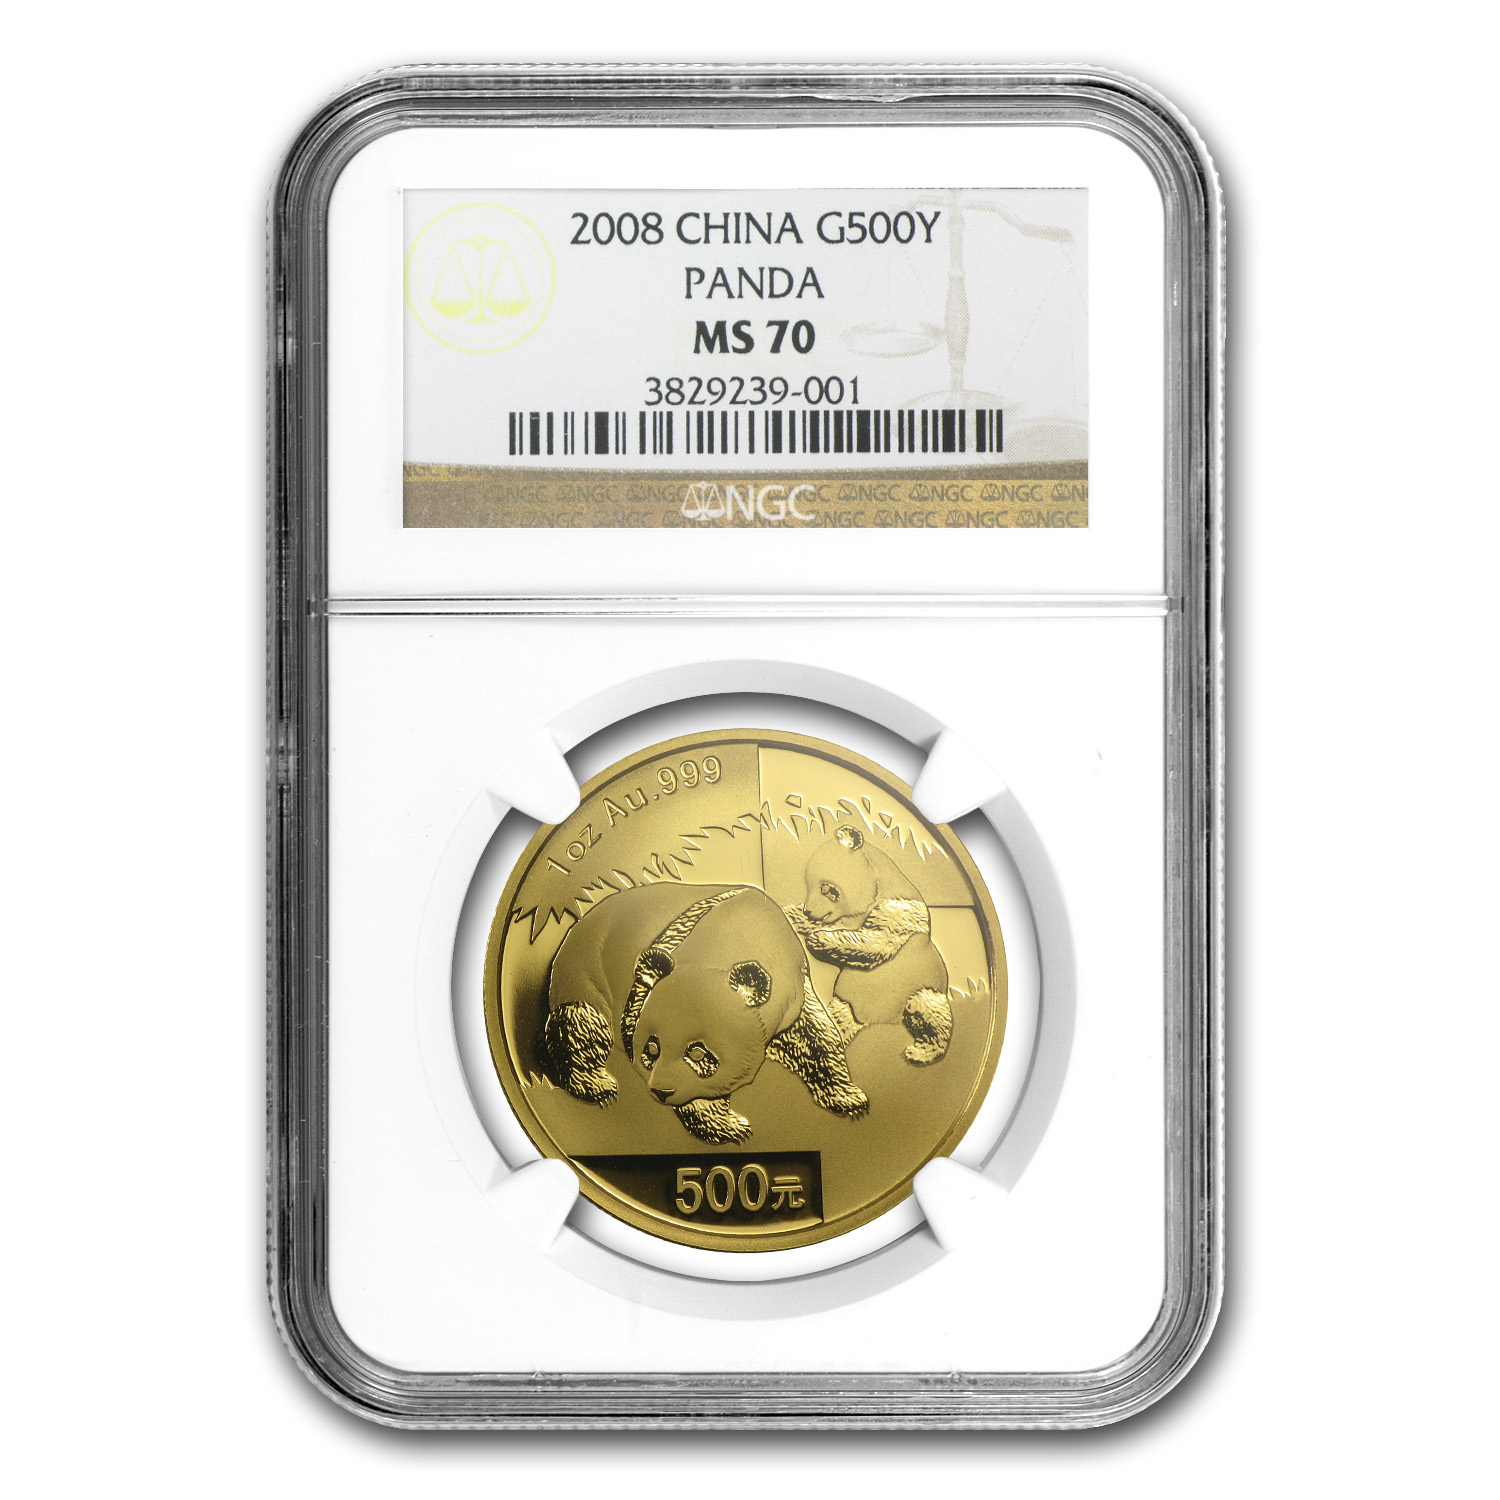 2008 1 oz Gold Chinese Panda MS-70 NGC